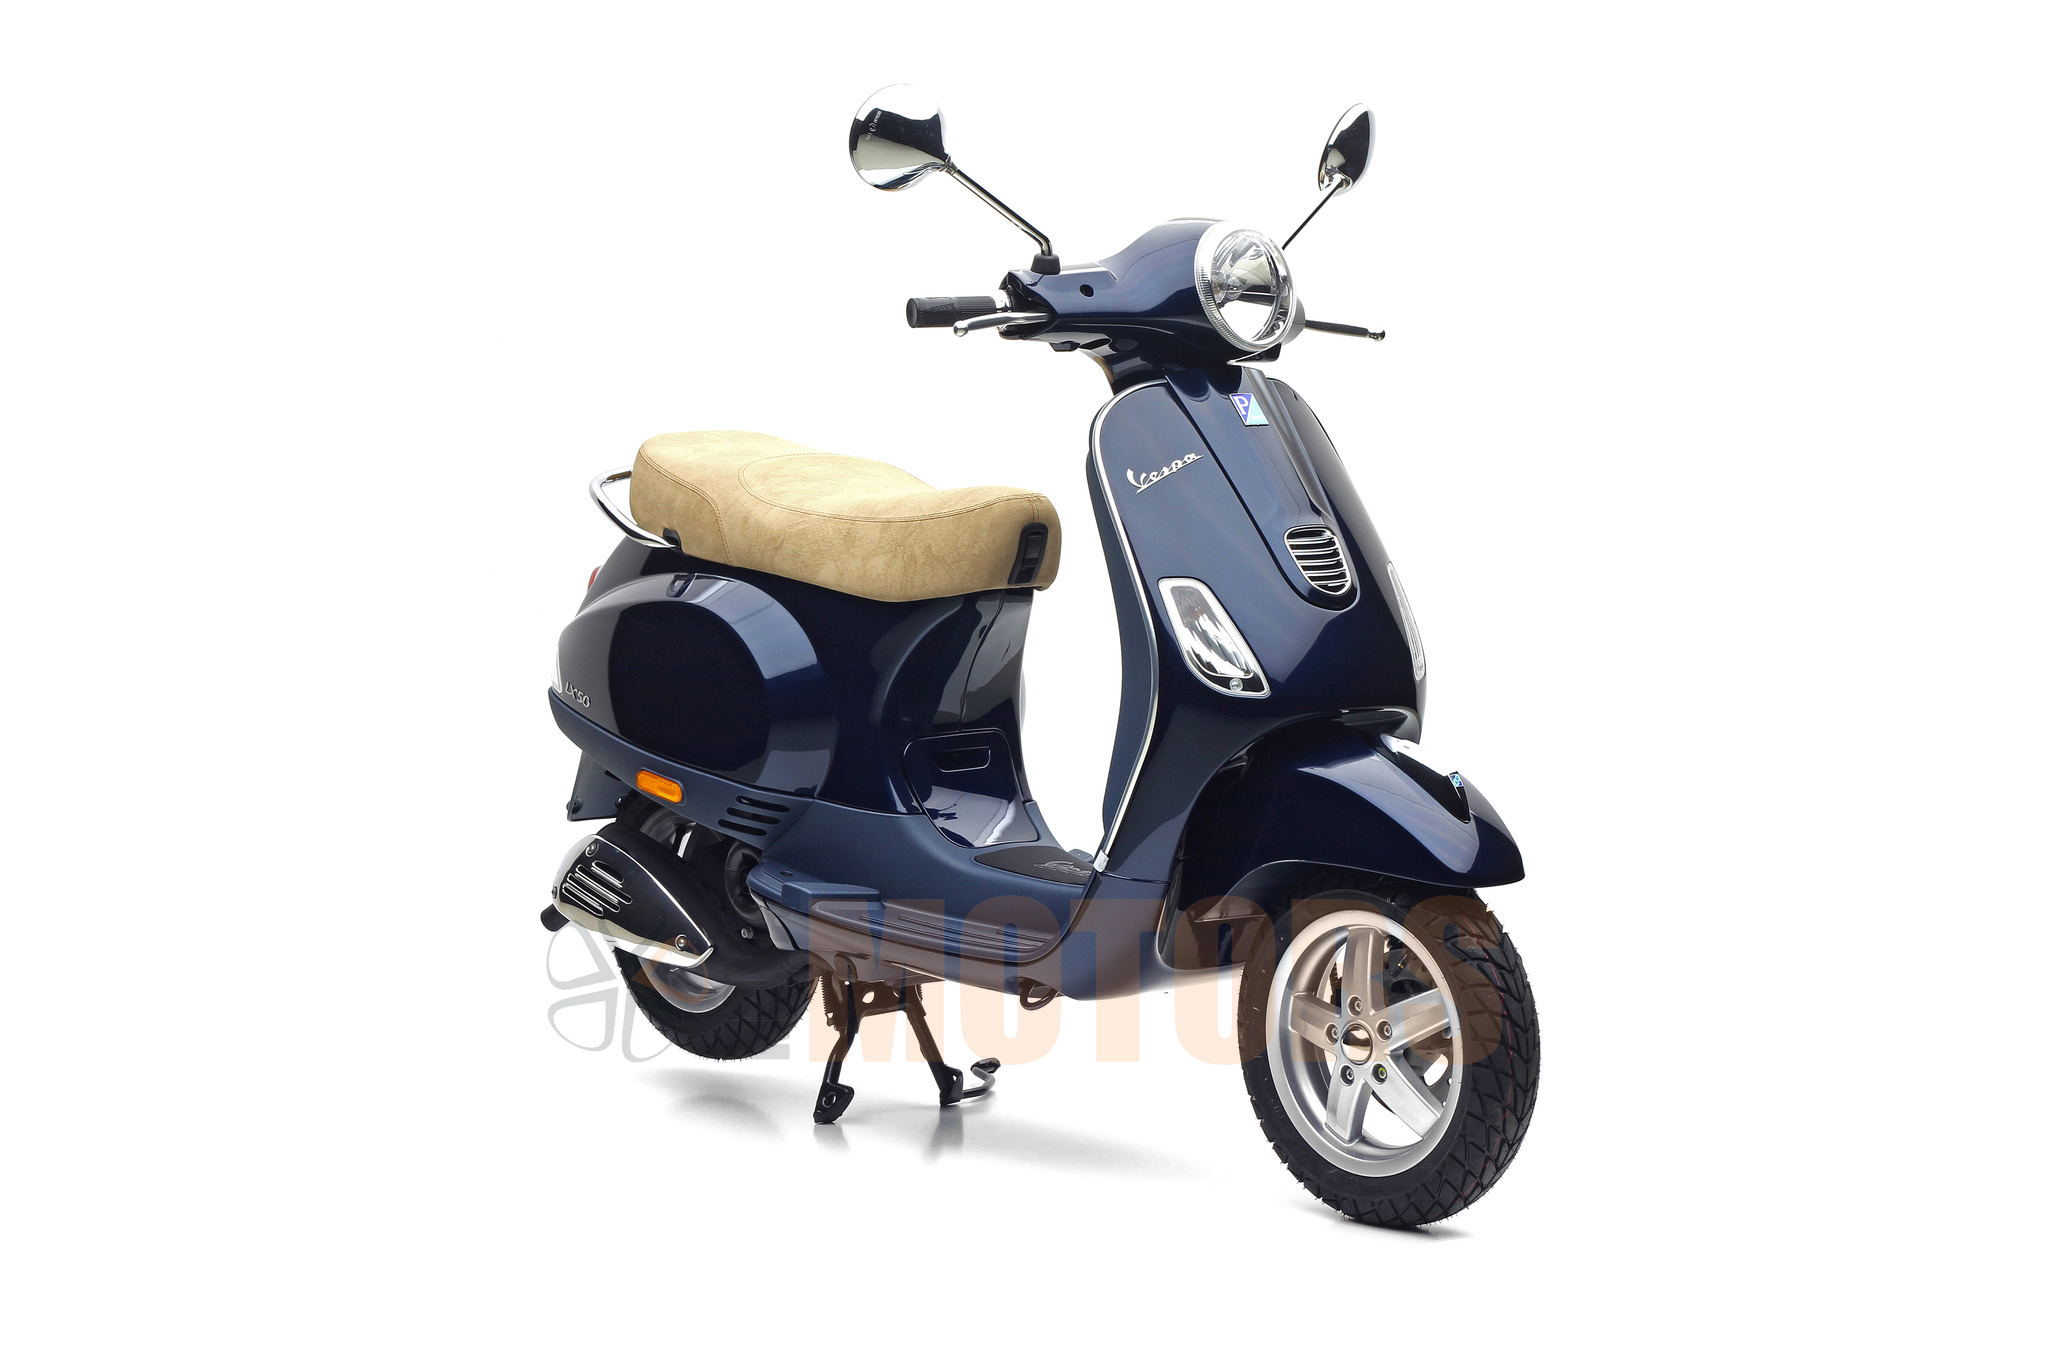 vespa vespa lx 50 2t moto zombdrive com. Black Bedroom Furniture Sets. Home Design Ideas